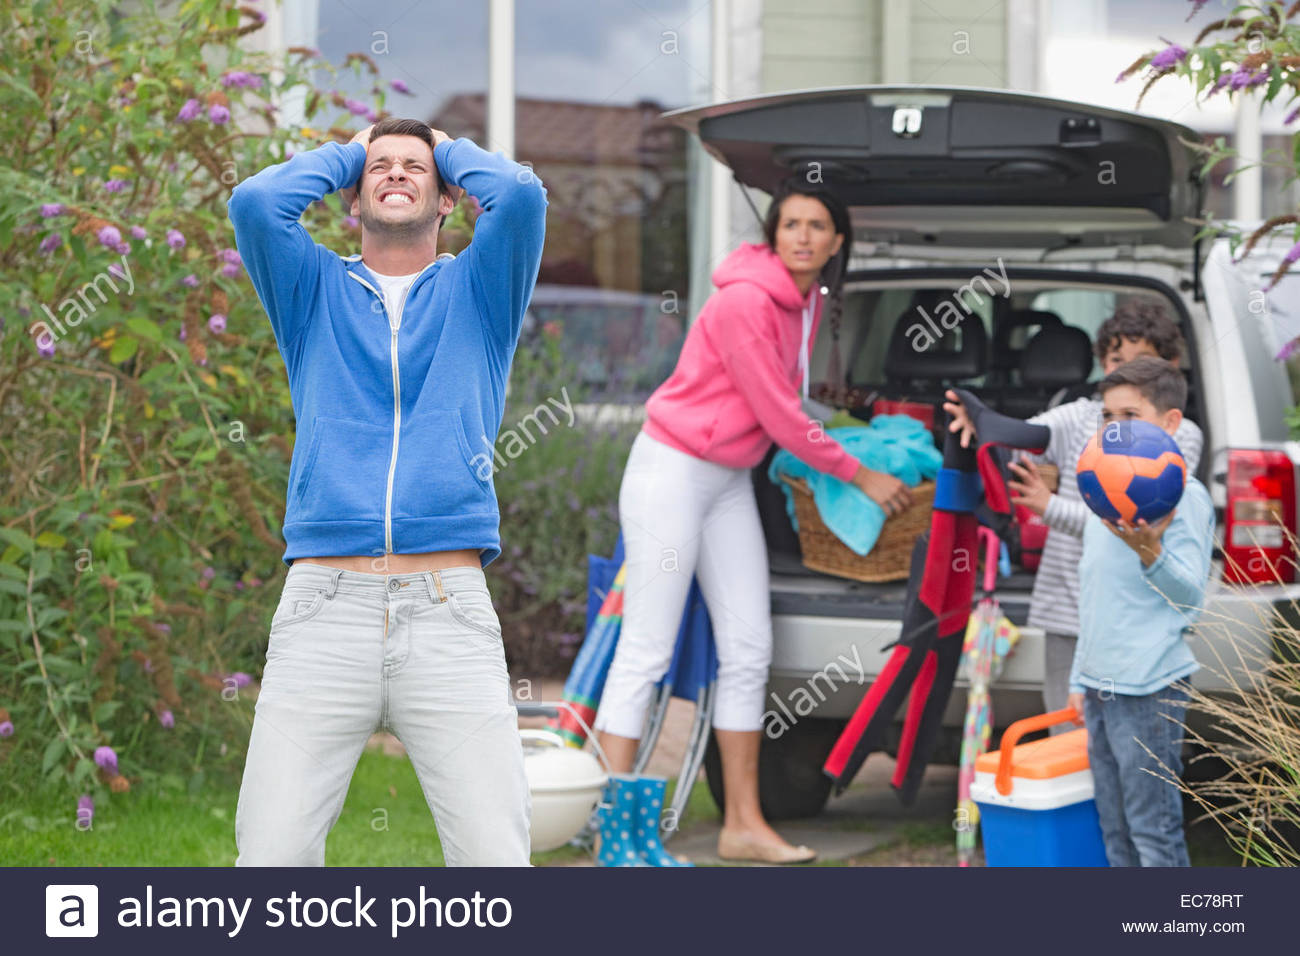 Frustrated father shouting as family packs car for vacation - Stock Image